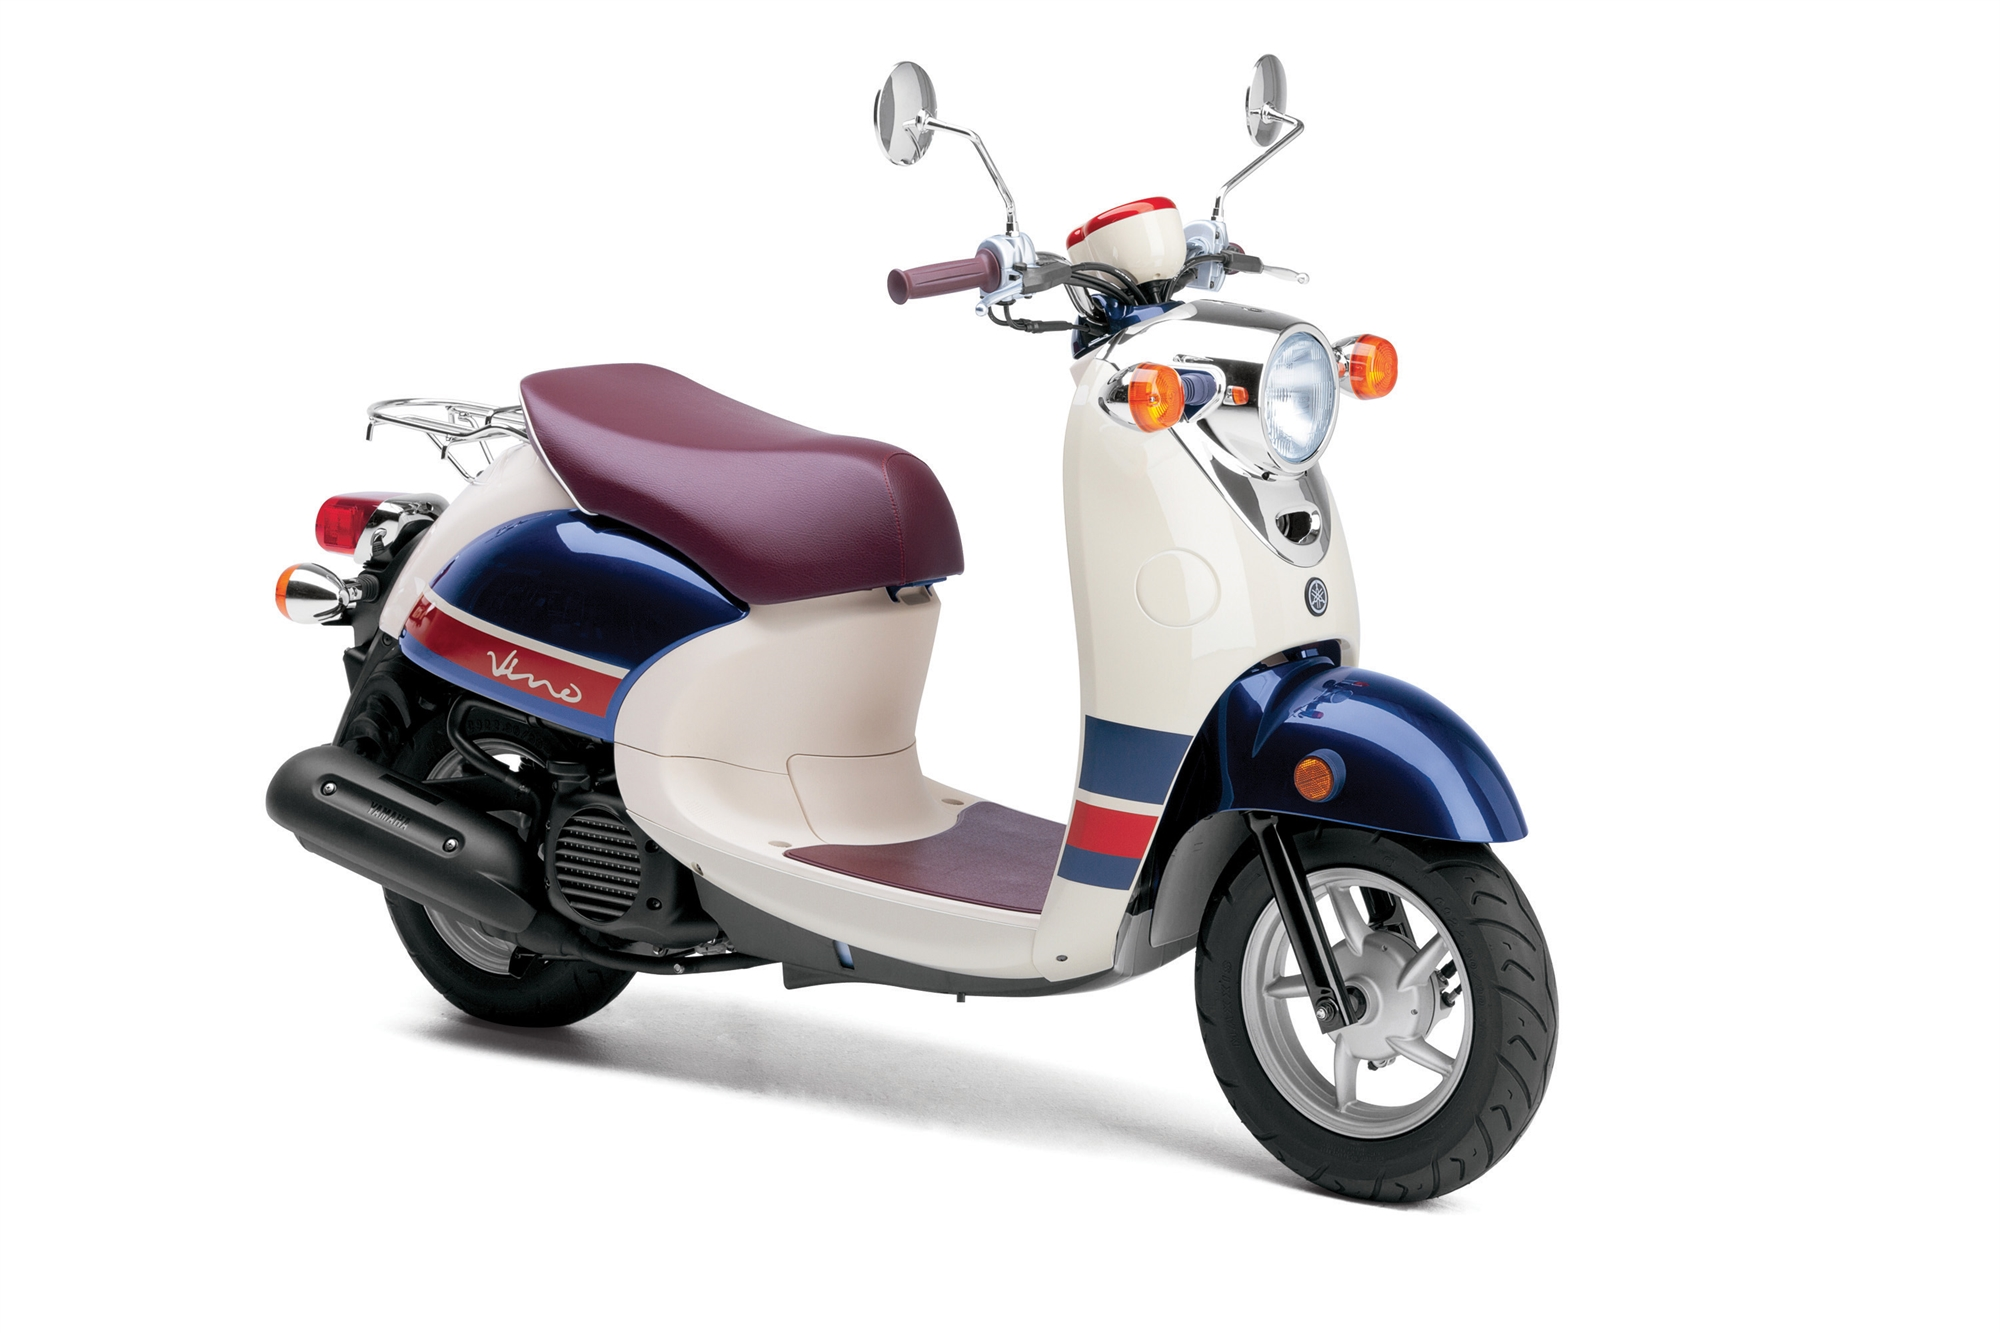 2014 Yamaha Vino Classic  First Pictures autoevolution